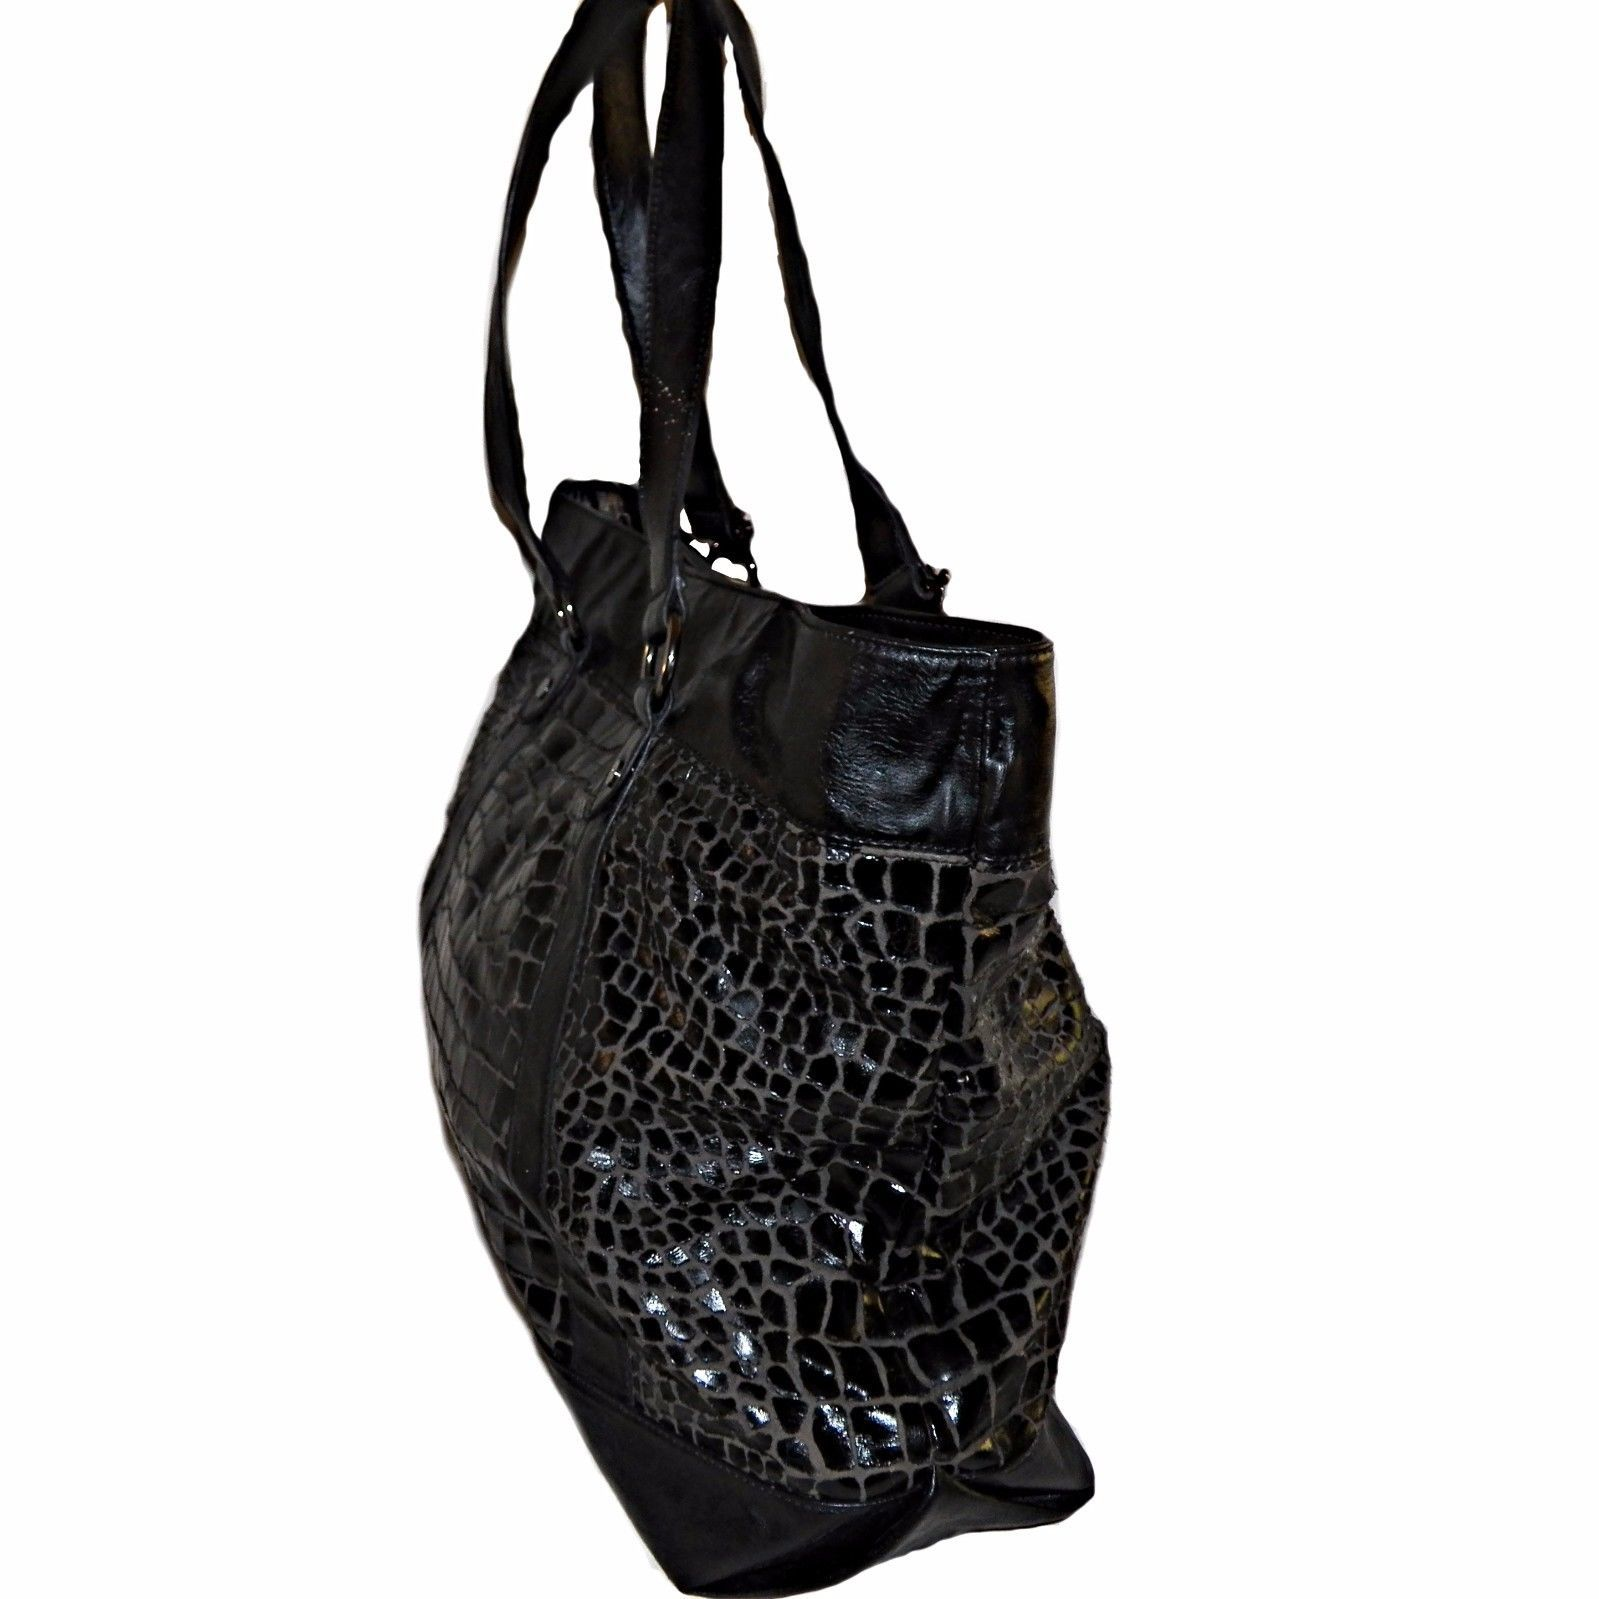 683757679a12 Christian Audigier Black Alligator Croc Print Vegan Leather Shopper Tote  Purse